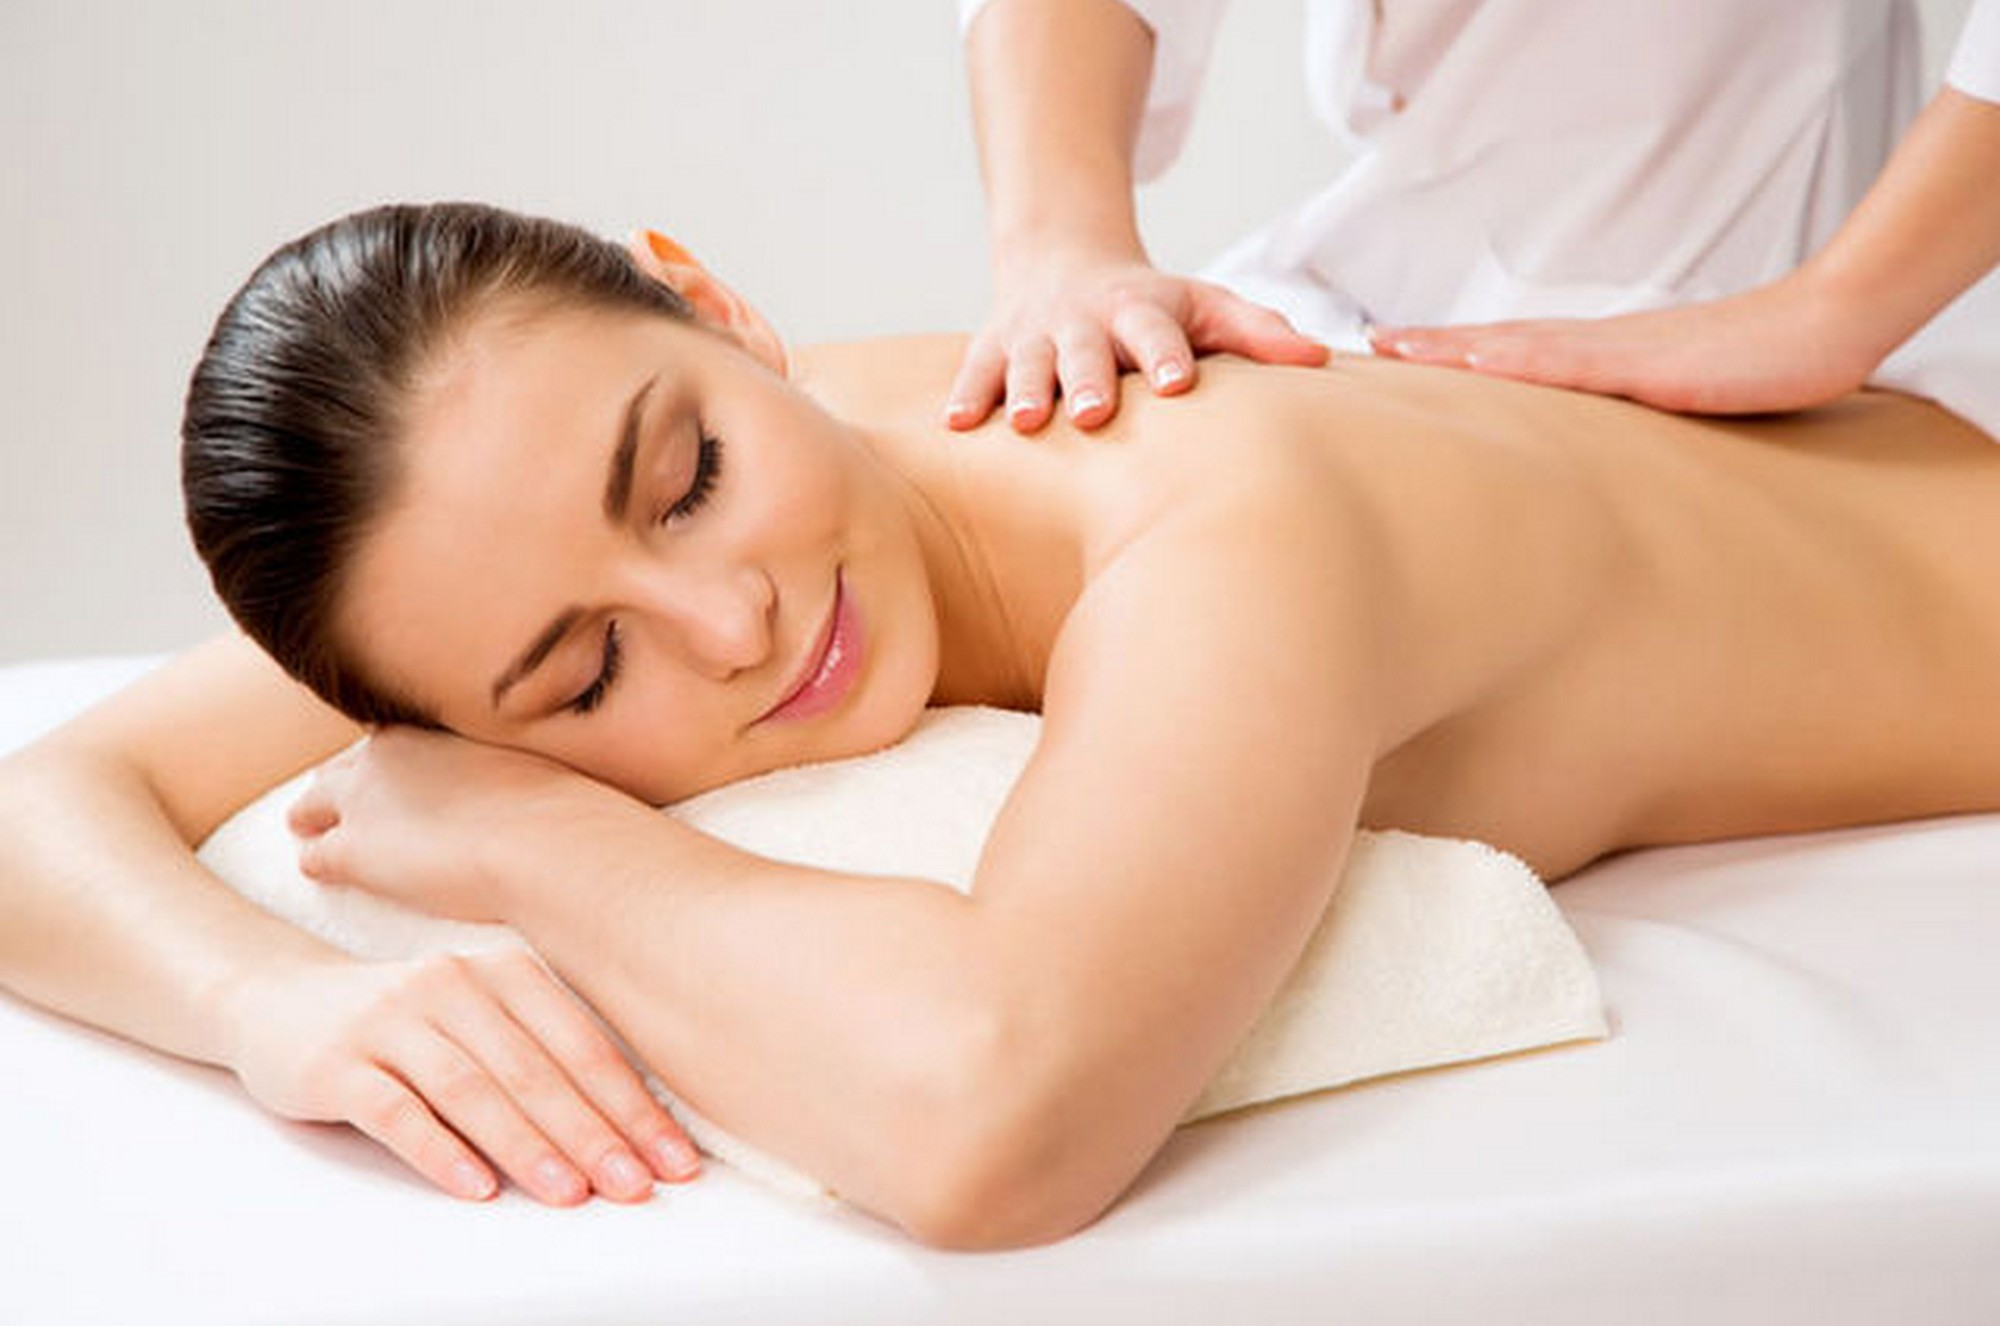 Where Can I Get Full Body Massage Full Body Massage Center In Dubai Venus Spa In Deira